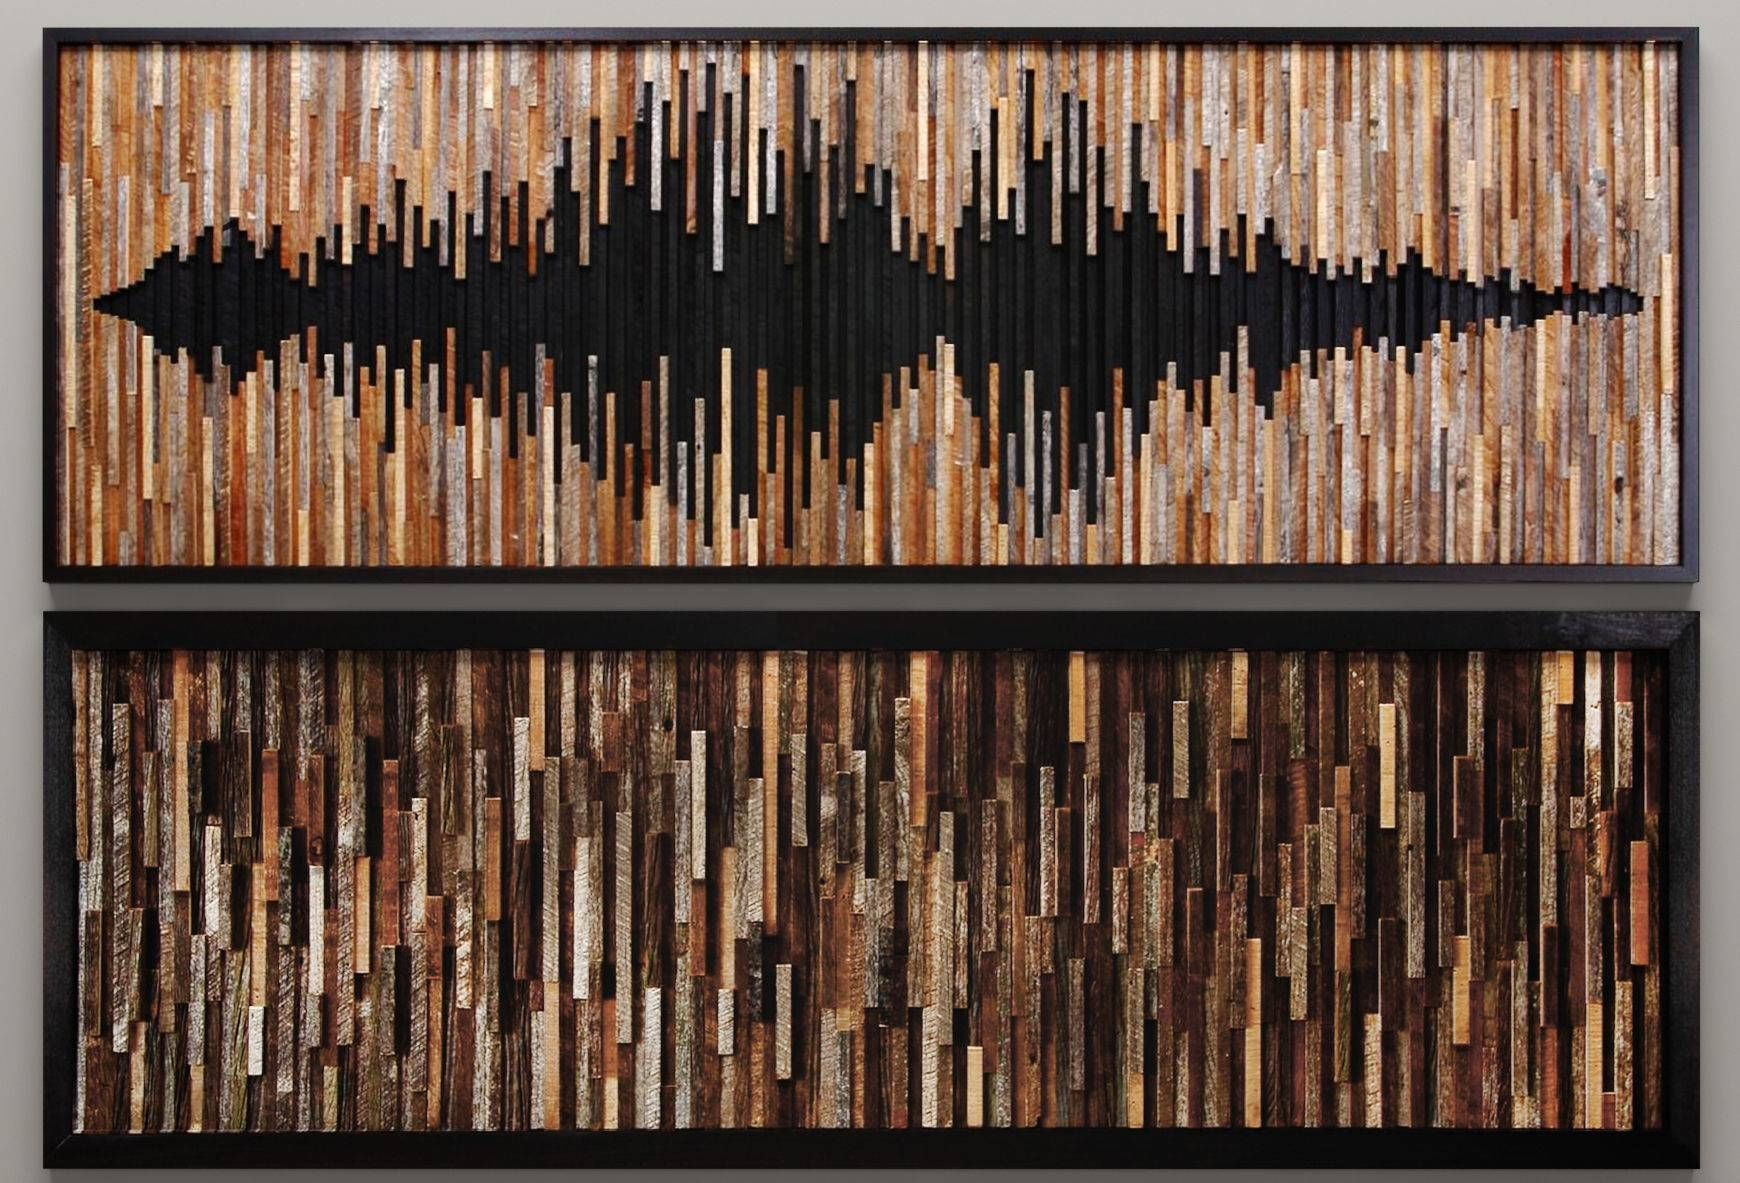 Wood Wall Art 46 3D Model | Cgtrader In Most Up To Date Wood Wall Art (View 20 of 25)